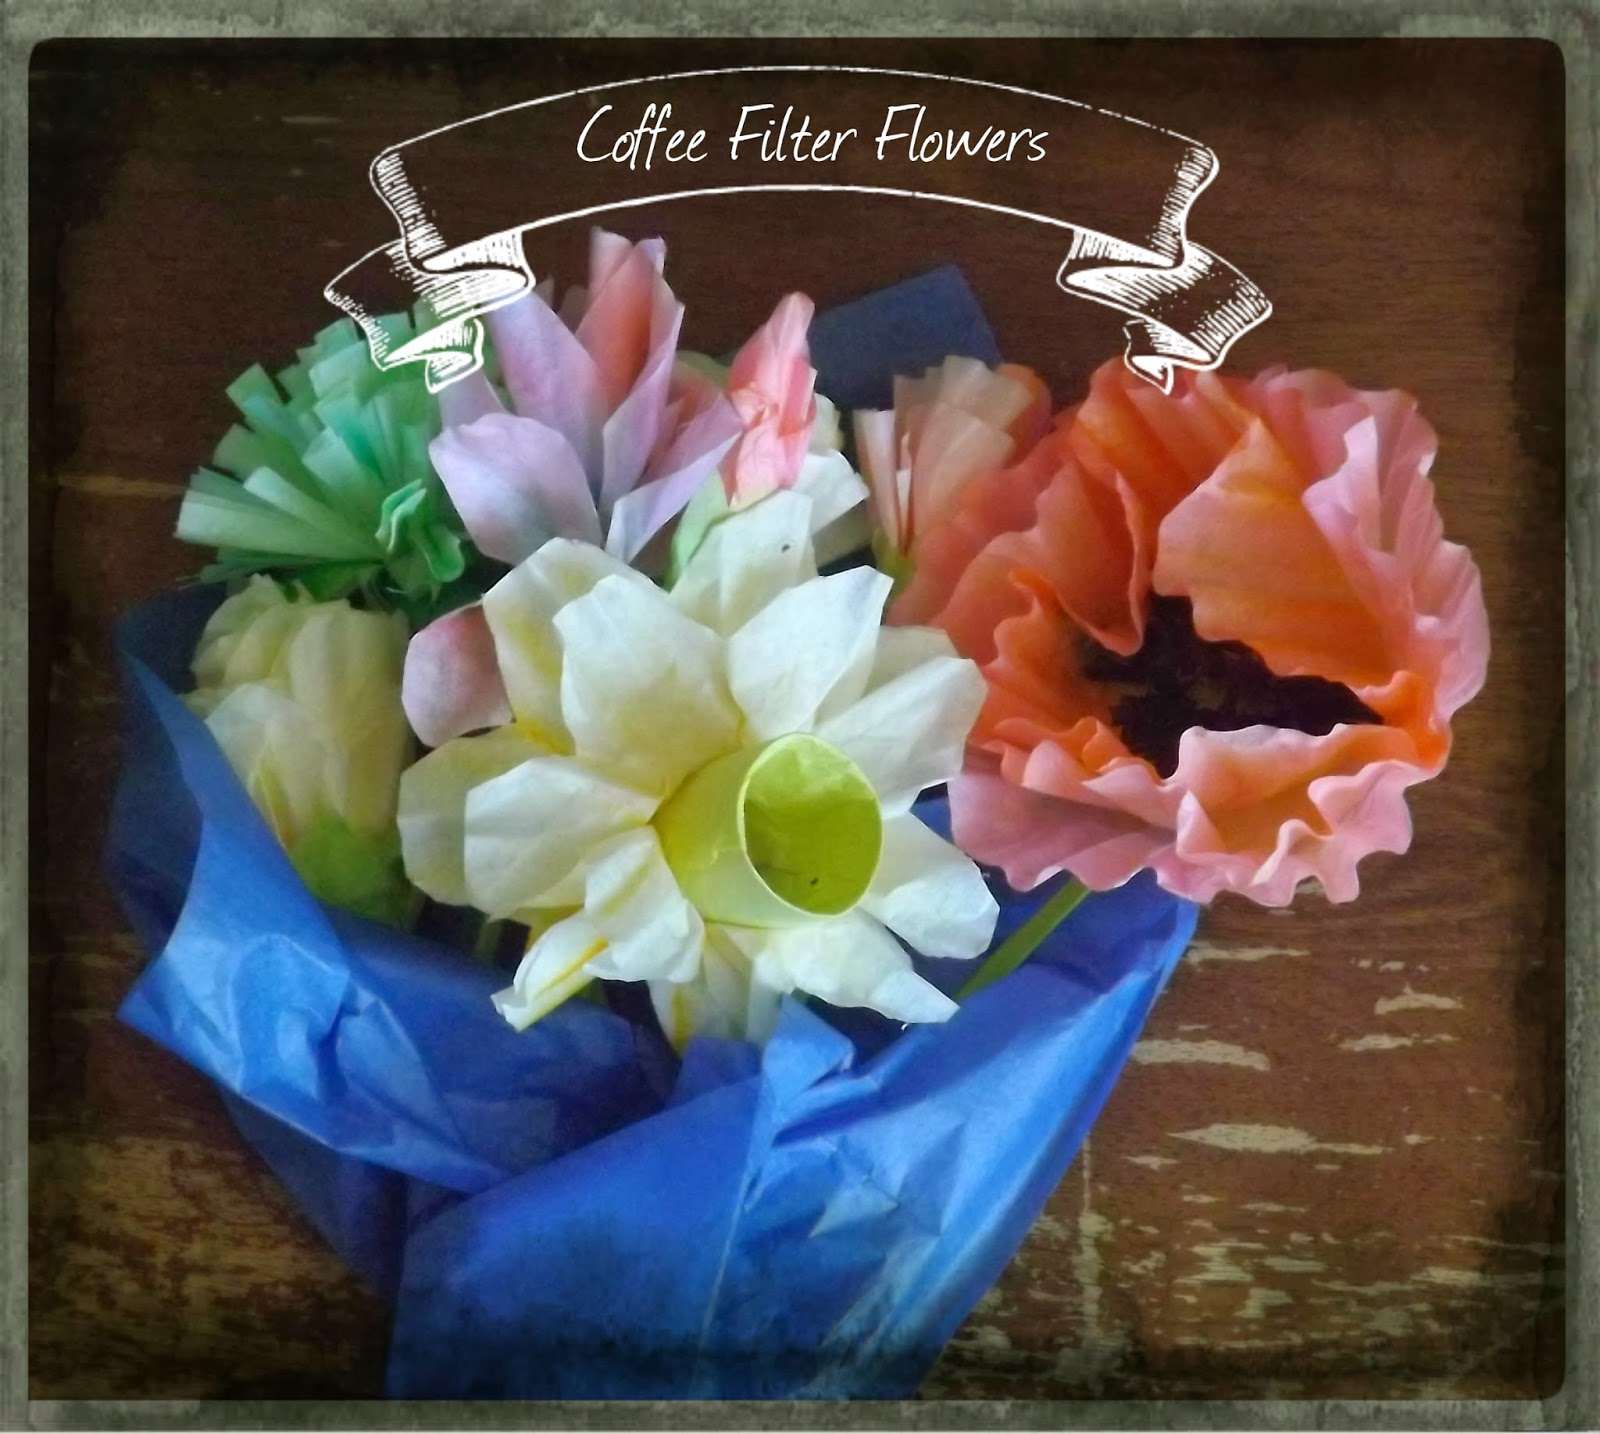 The Middle Aged Woman Who Lived In A Shoe Coffee Filter Flowers